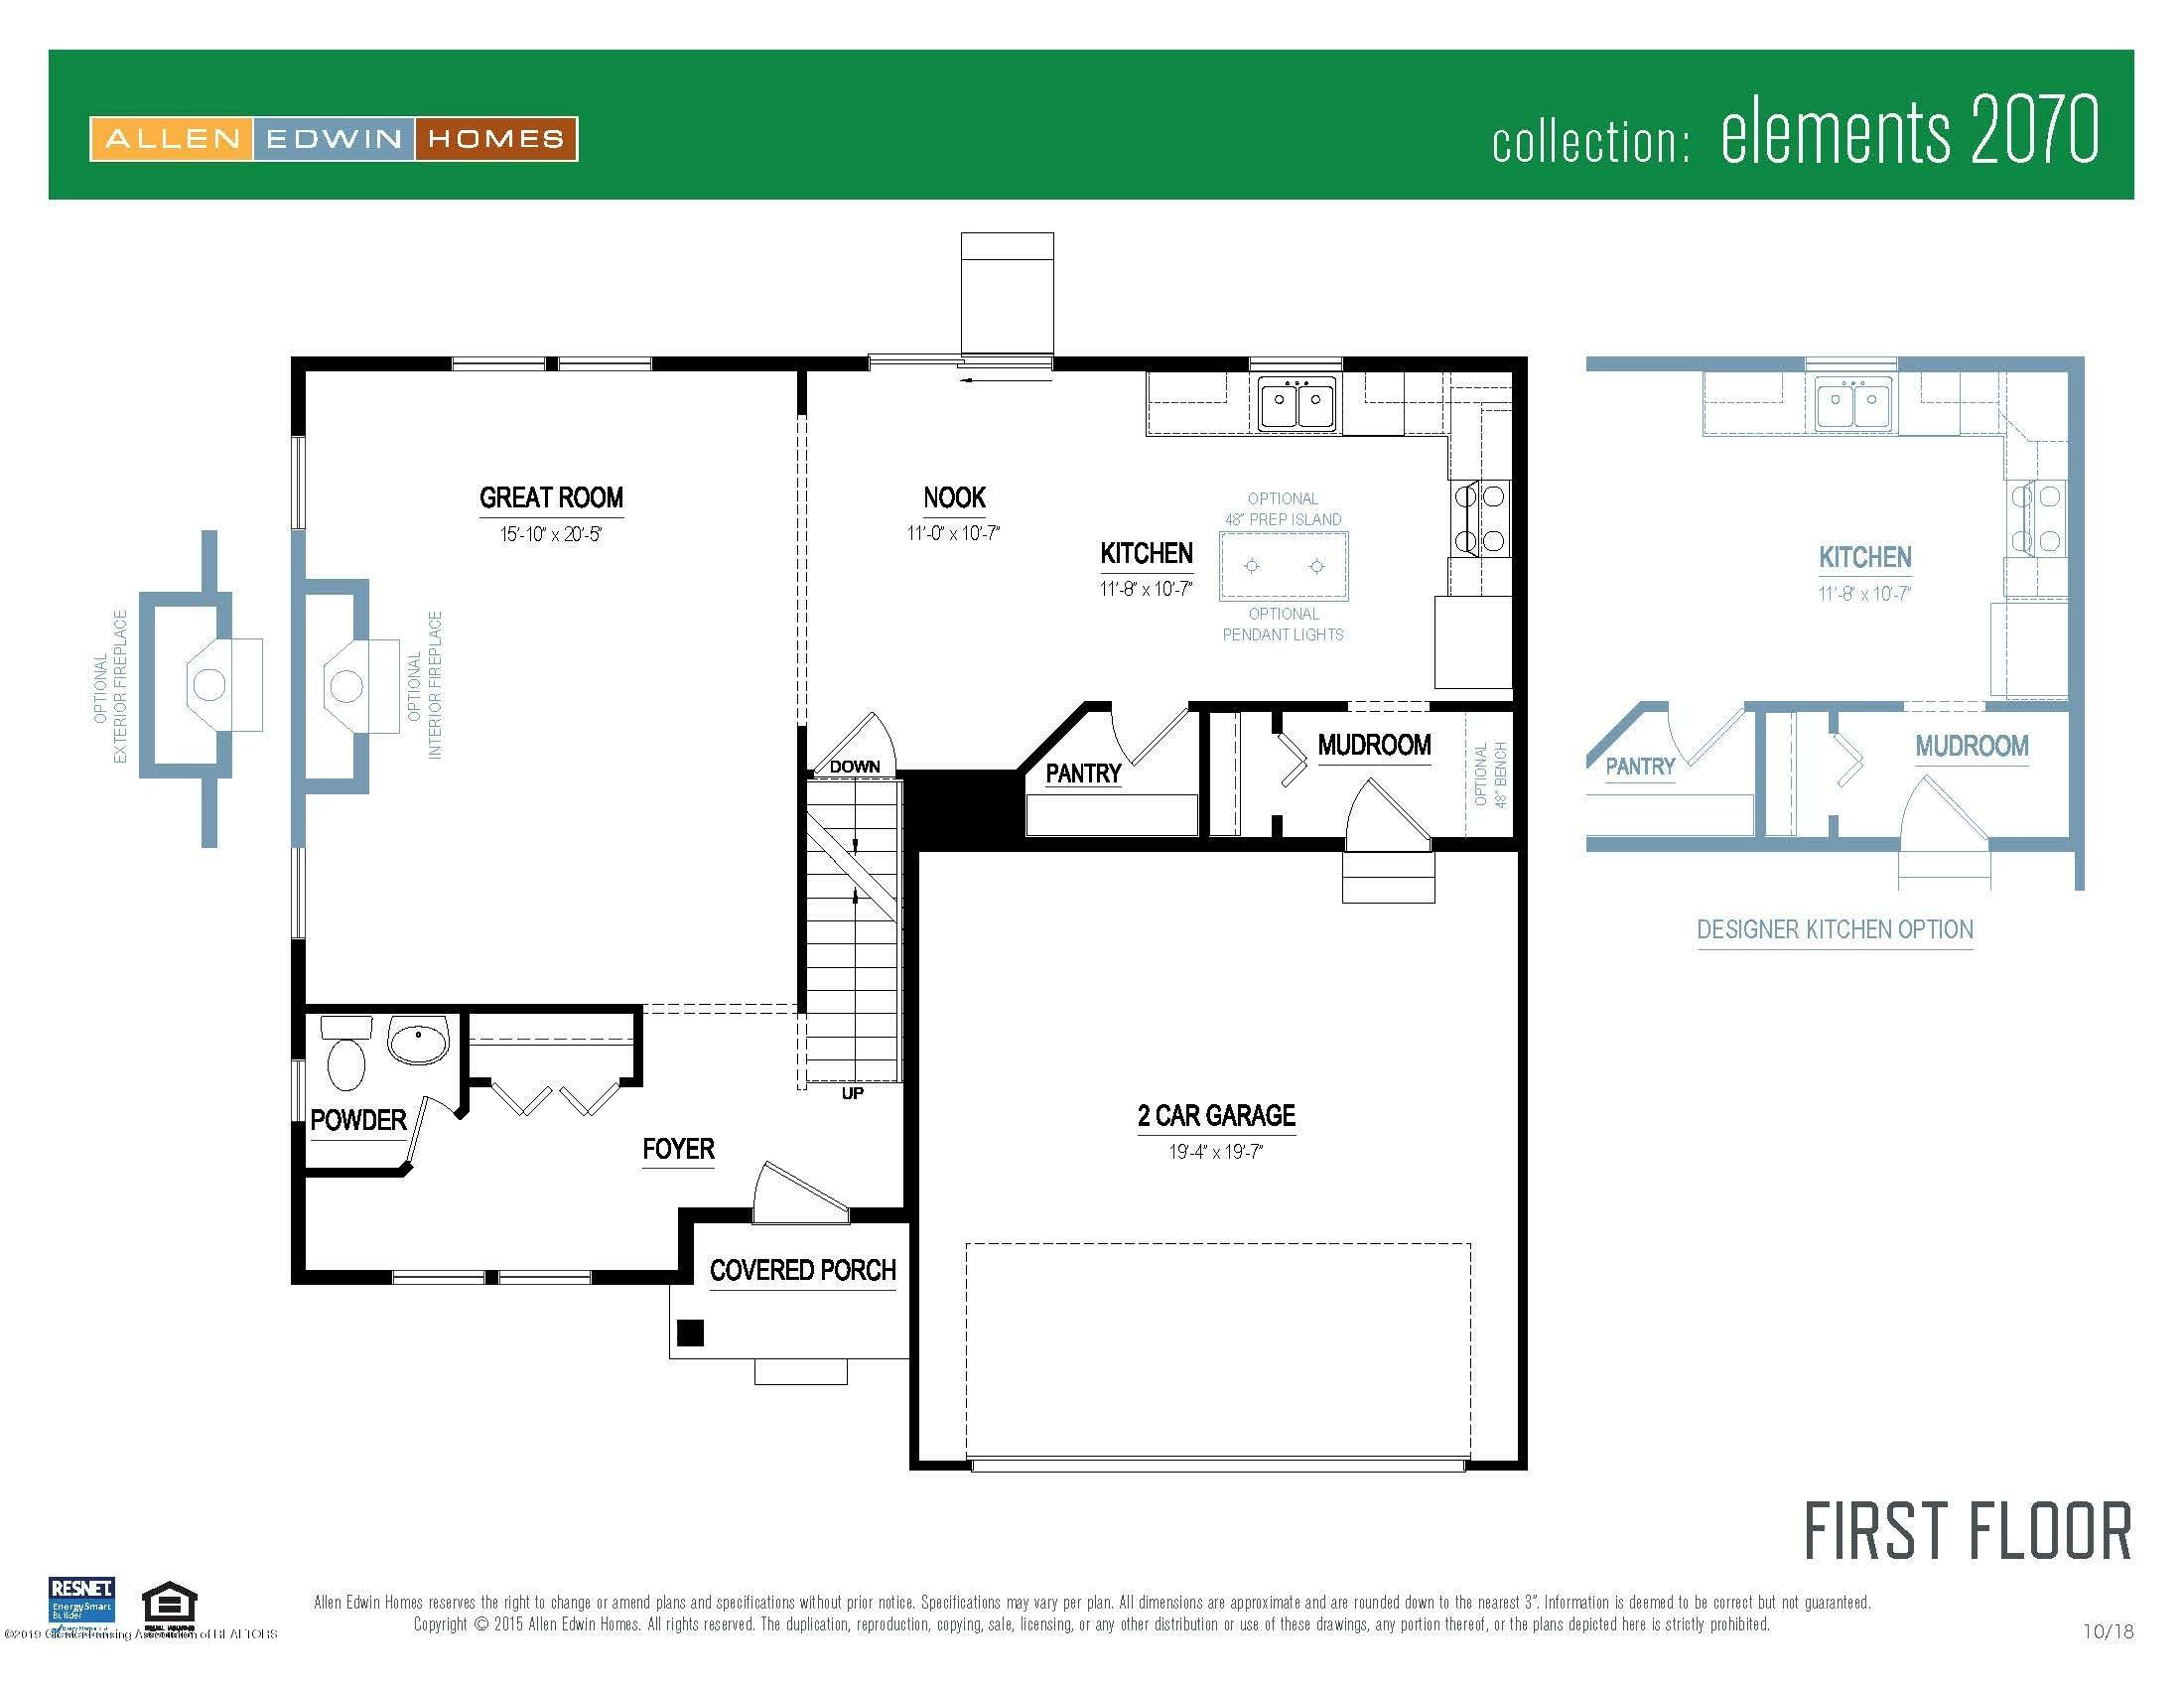 201 Ayla Drive - Elements 2070 V8.0a First Floor - 19